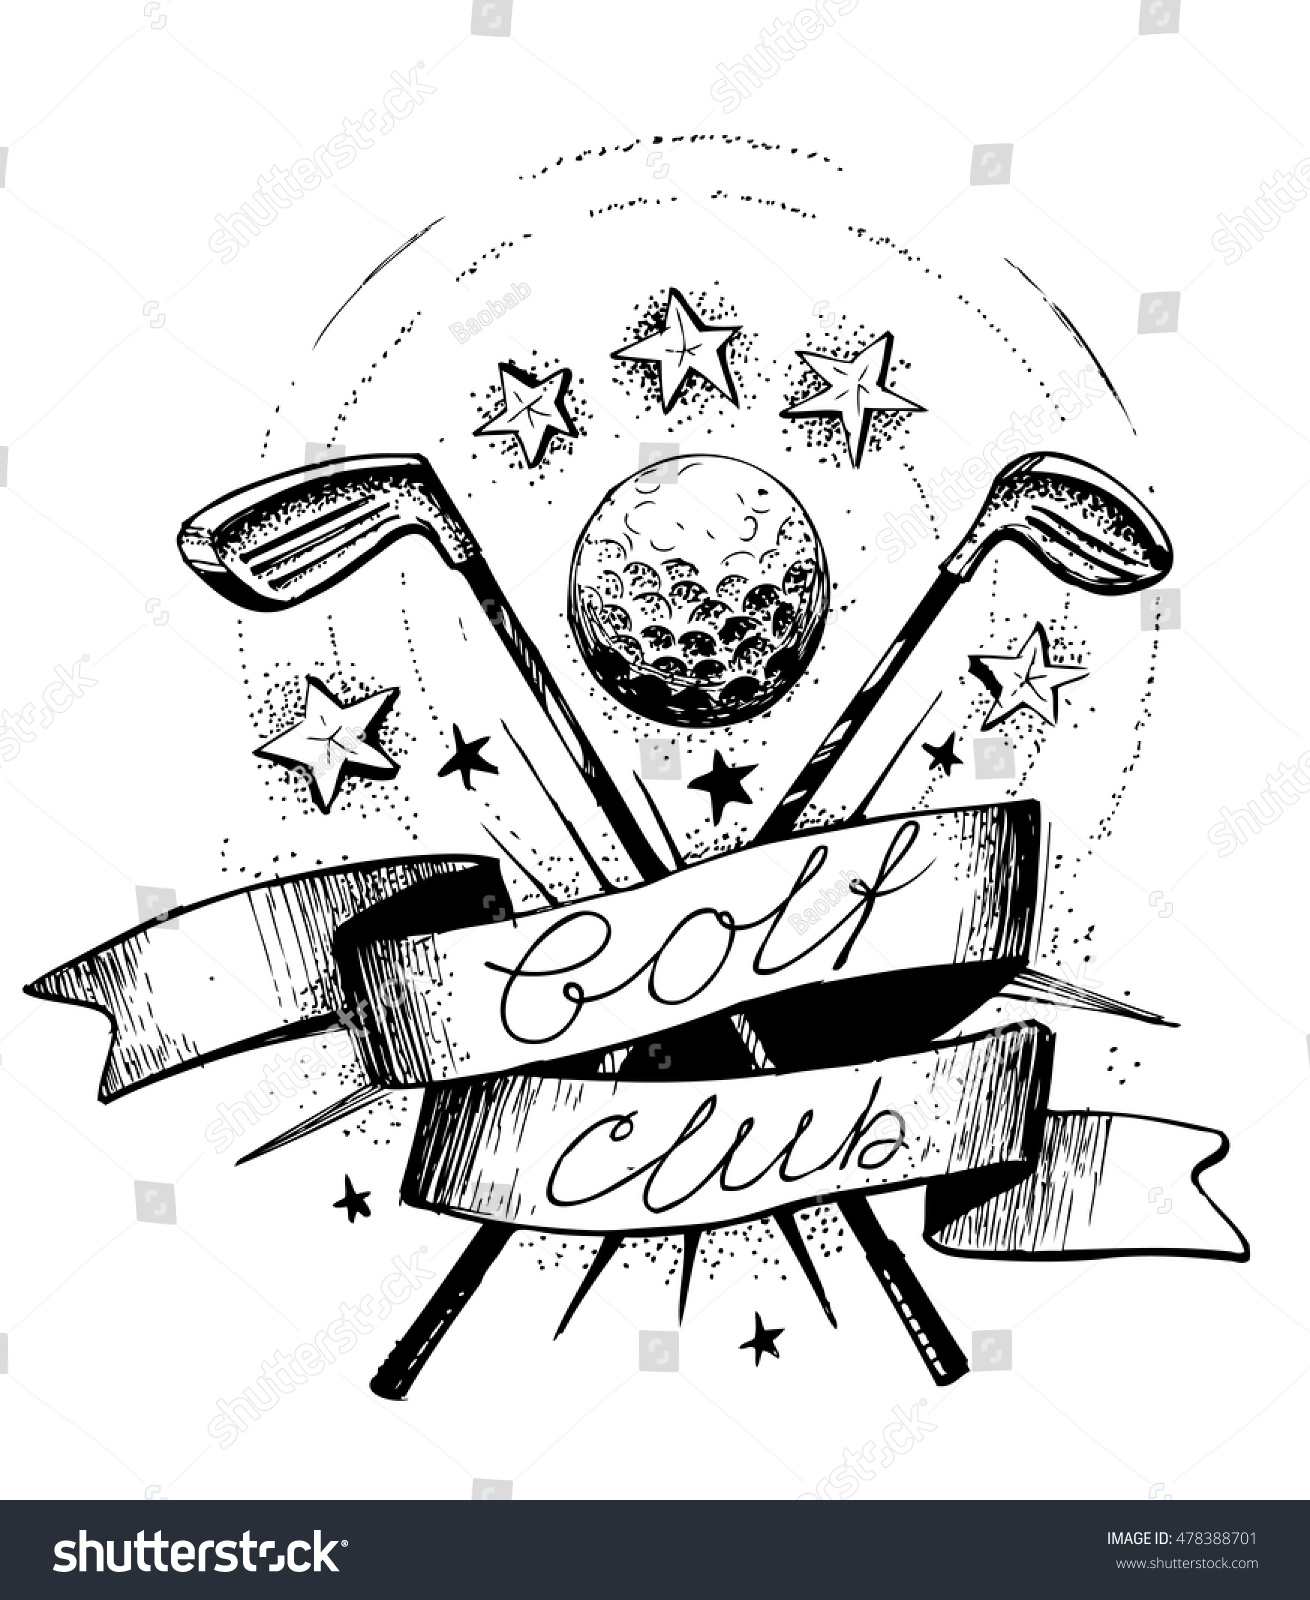 golf club emblem golf clubs ball stock vector 478388701 shutterstock. Black Bedroom Furniture Sets. Home Design Ideas